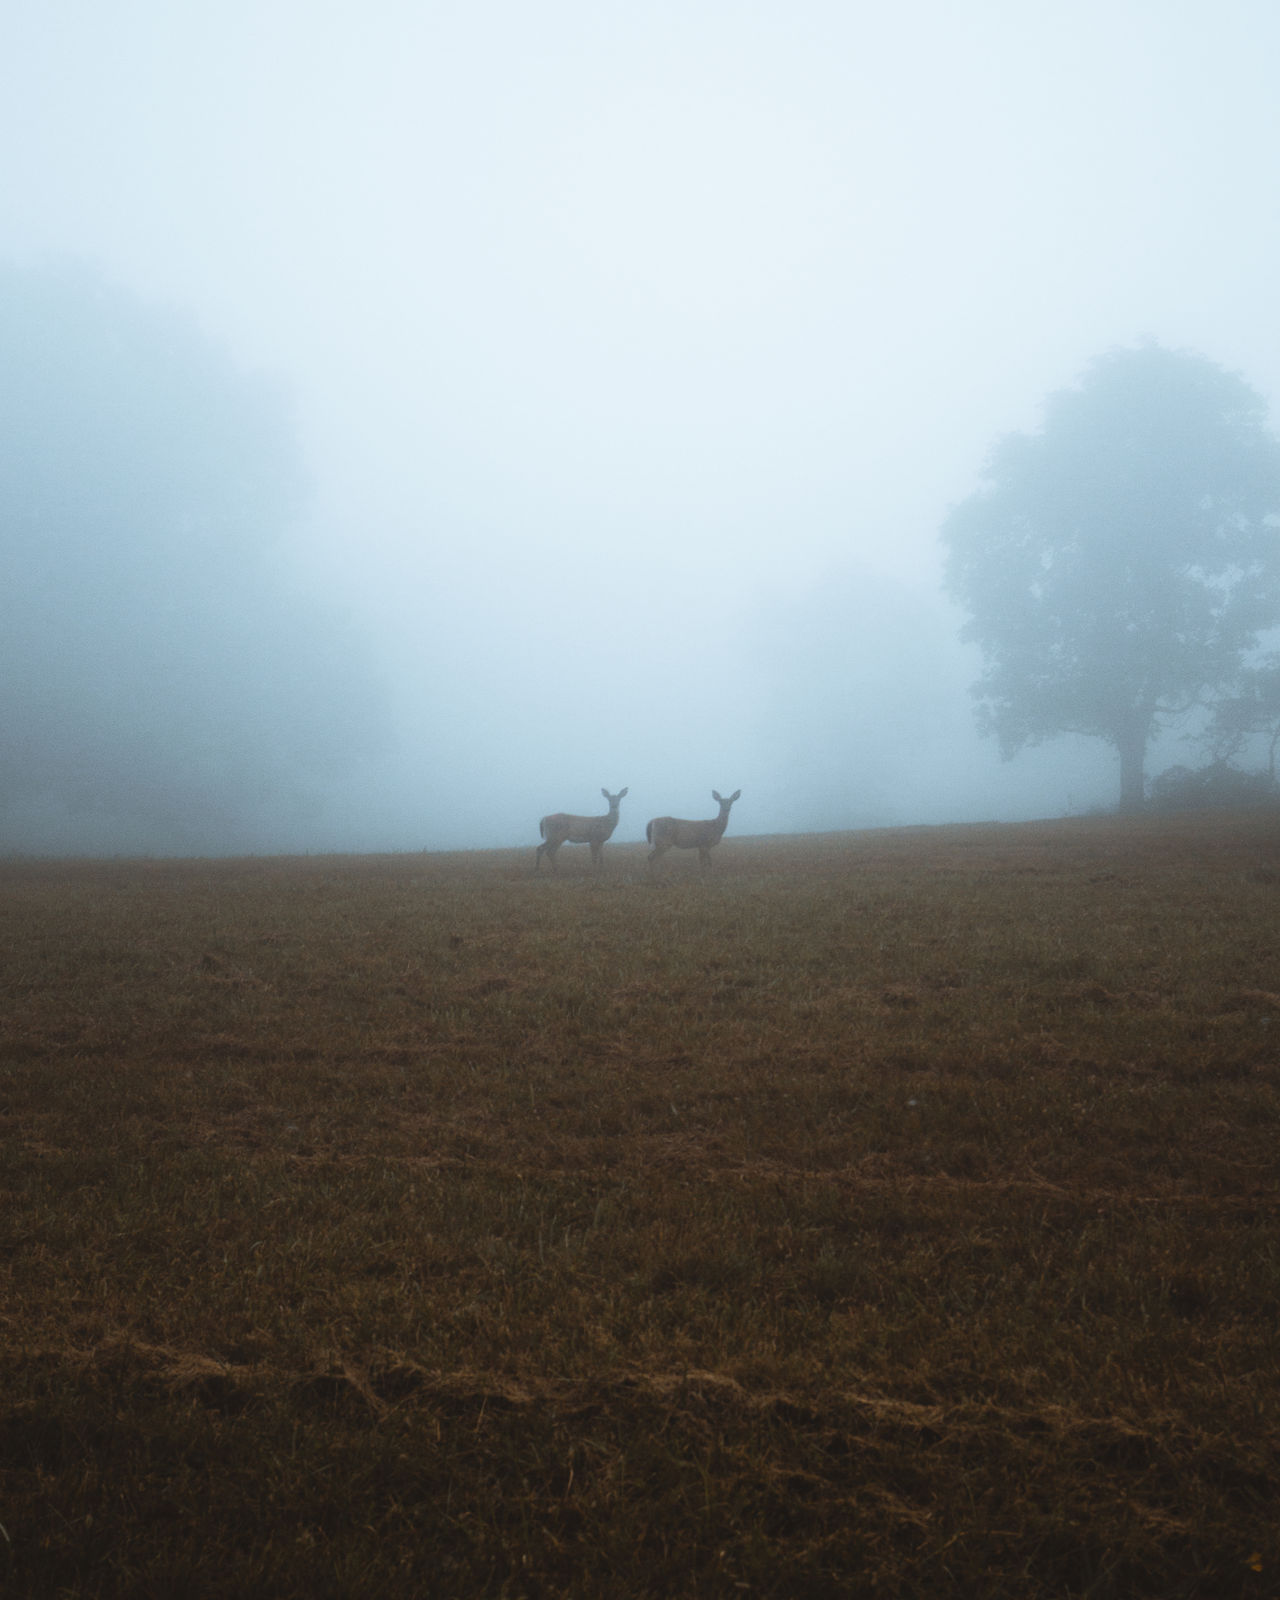 fog, field, land, environment, sky